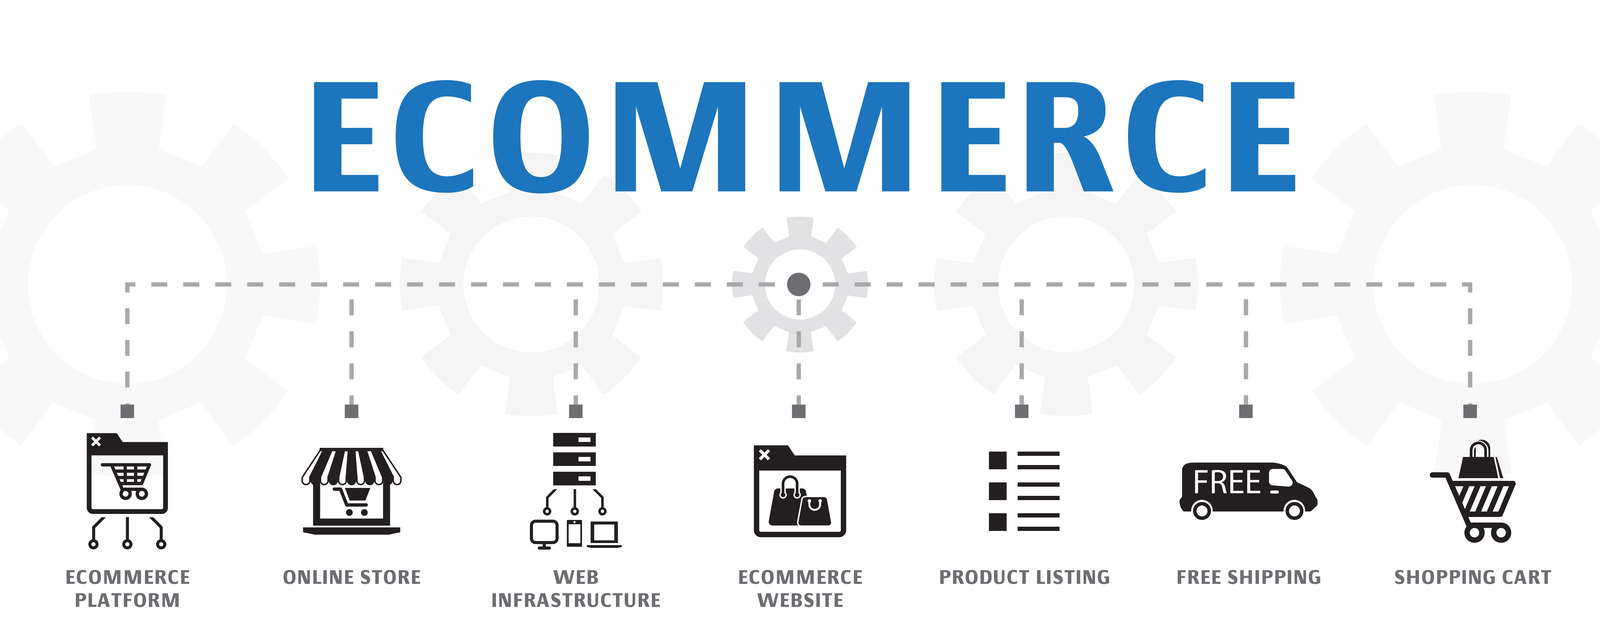 Ecommerce | 7 Best Ecommerce Platforms For Businesses Of All Sizes